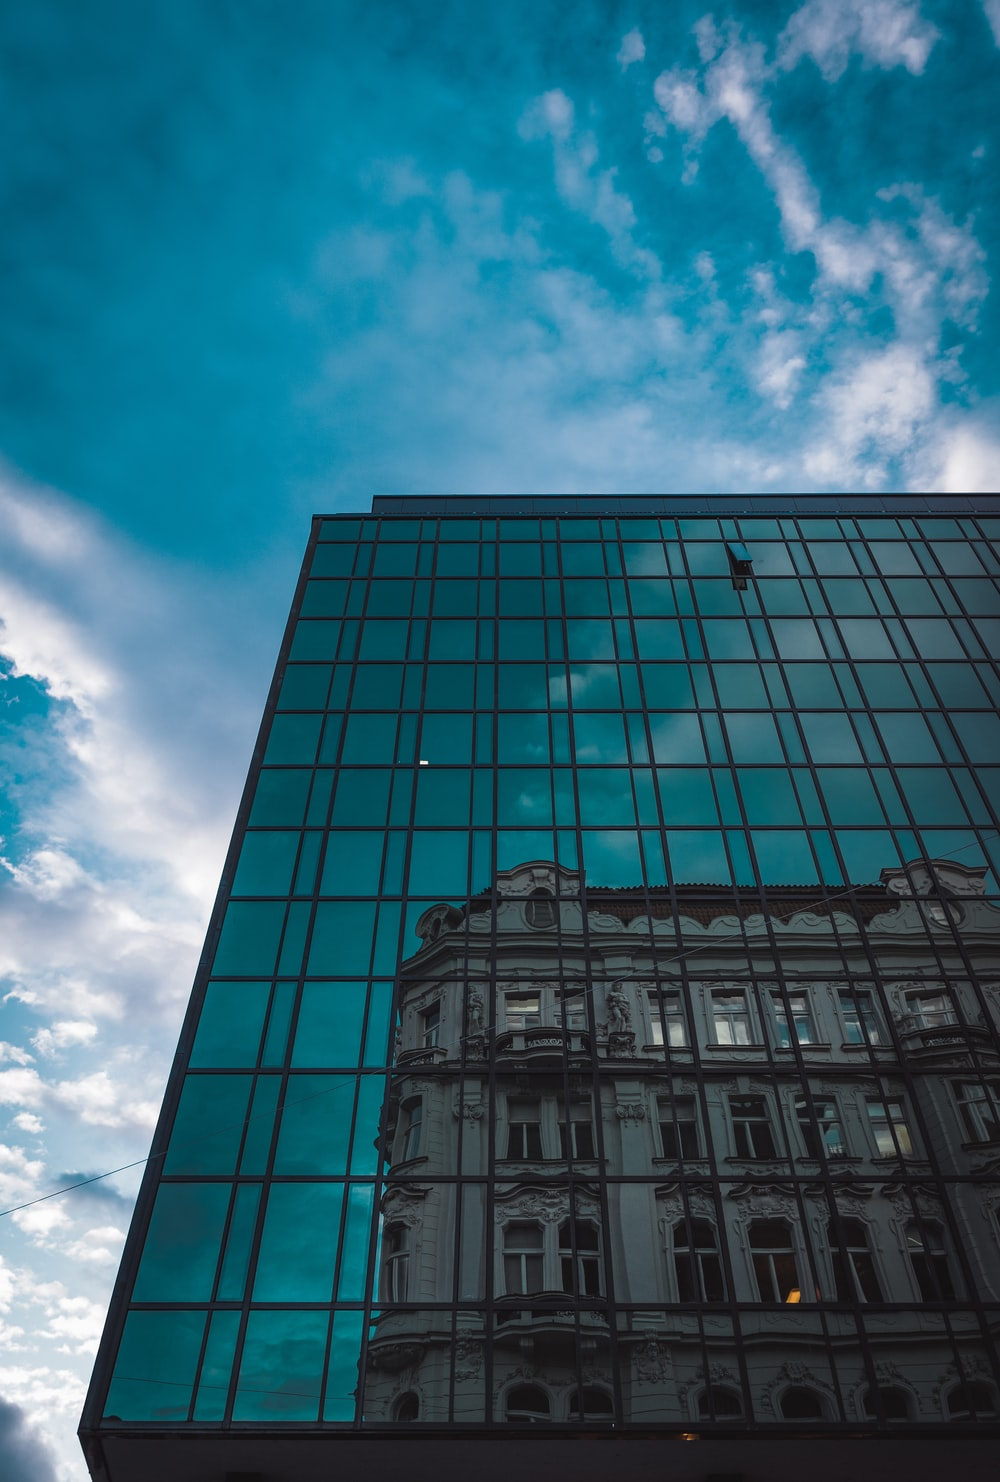 blue glass walled high rise building under blue and white cloudy sky during daytime